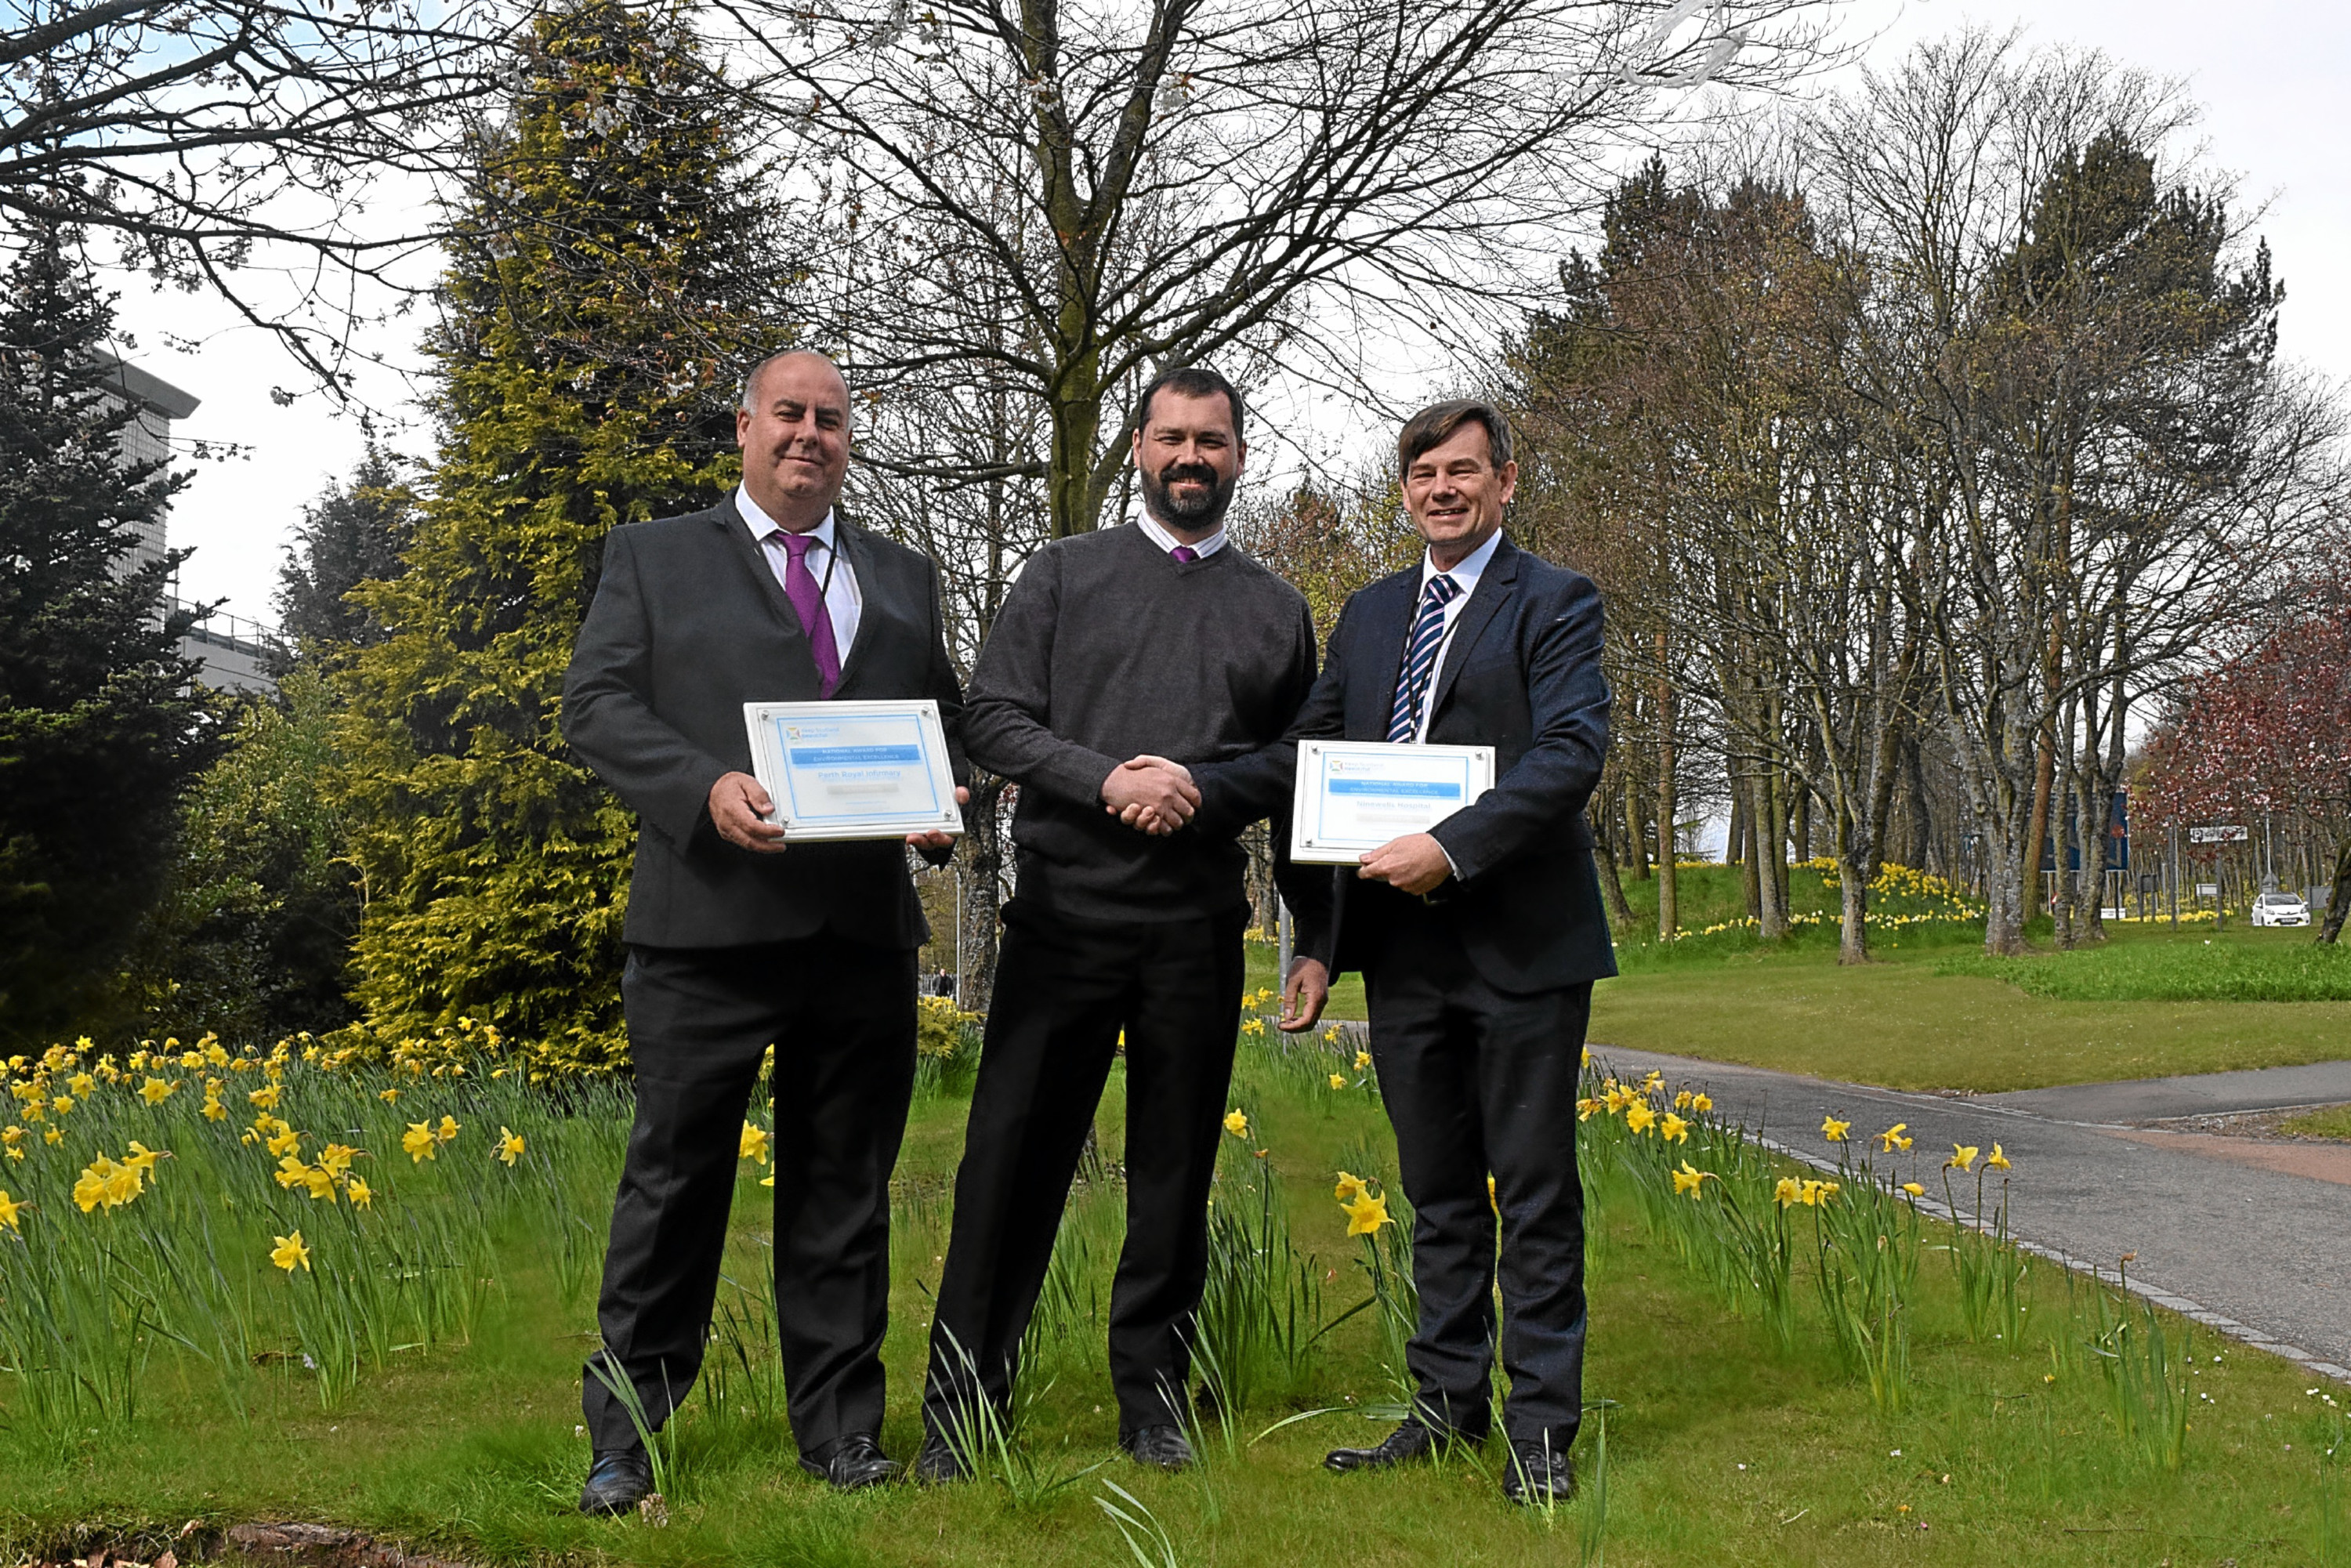 Photo of Robert Harvie, estates manager with NHS Tayside, Colin Hegarty, local environmental quality coordinator with Keep Scotland Beautiful and Malcolm Ross, grounds maintenance manager with NHS Tayside.